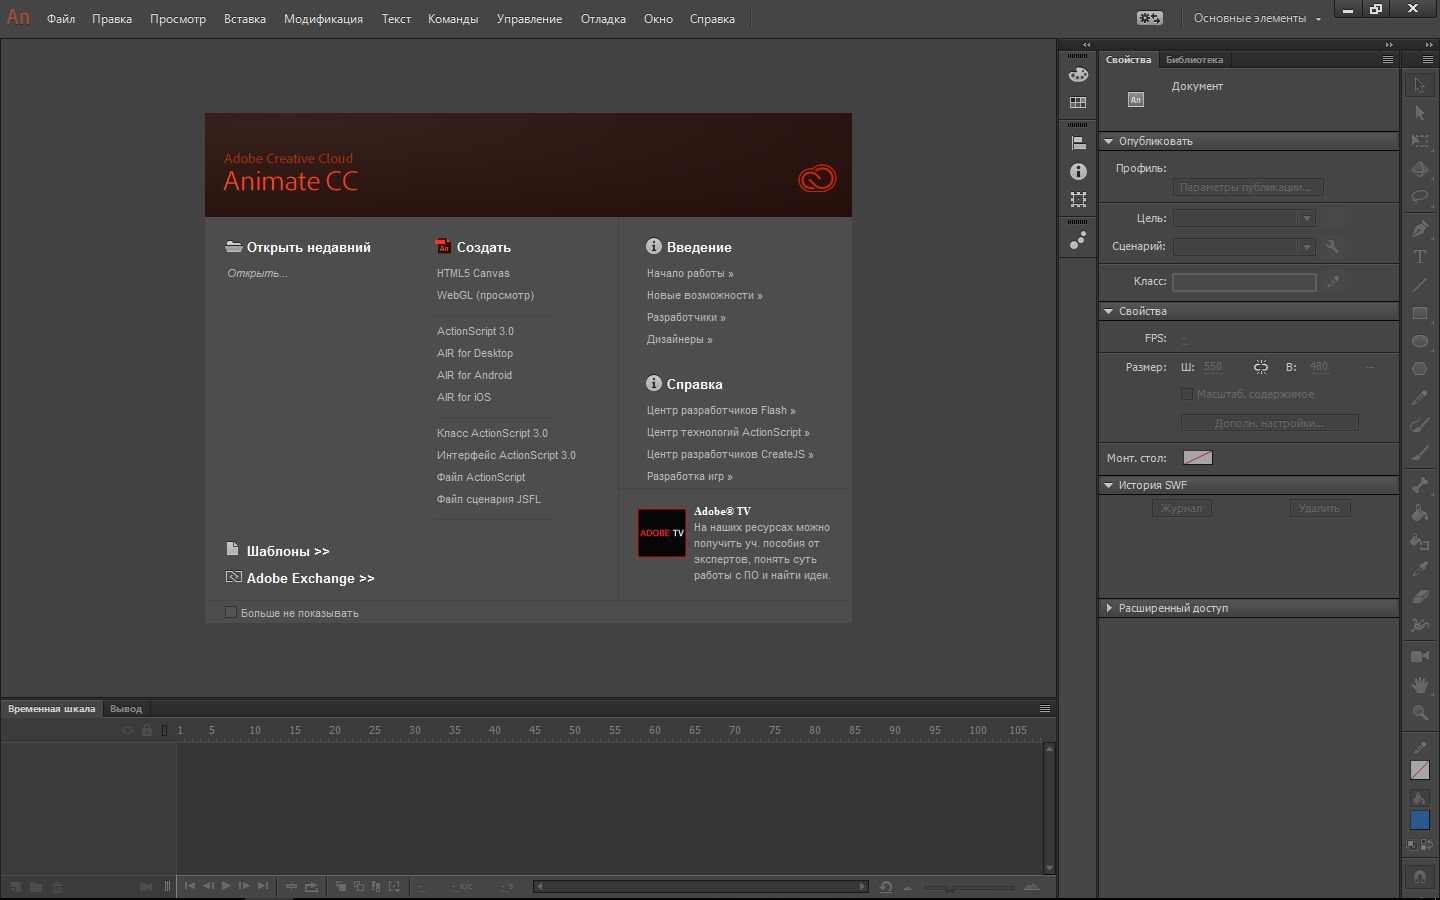 Adobe Animate CC 2017 16.0.0.112 RePack by KpoJIuK (10.12.2016)